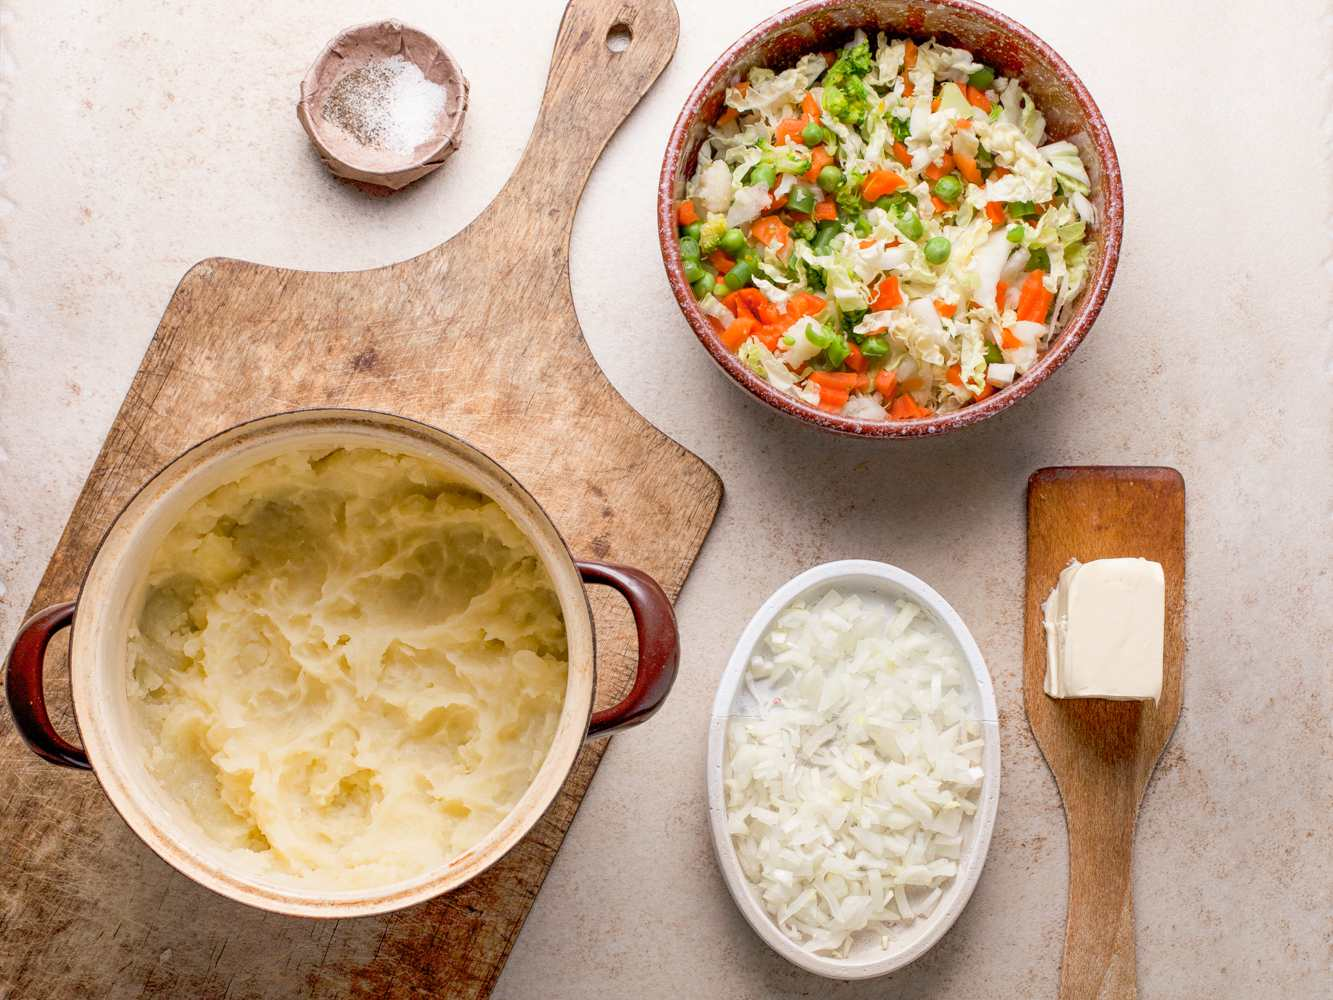 Traditional bubble and squeak recipe ingredients